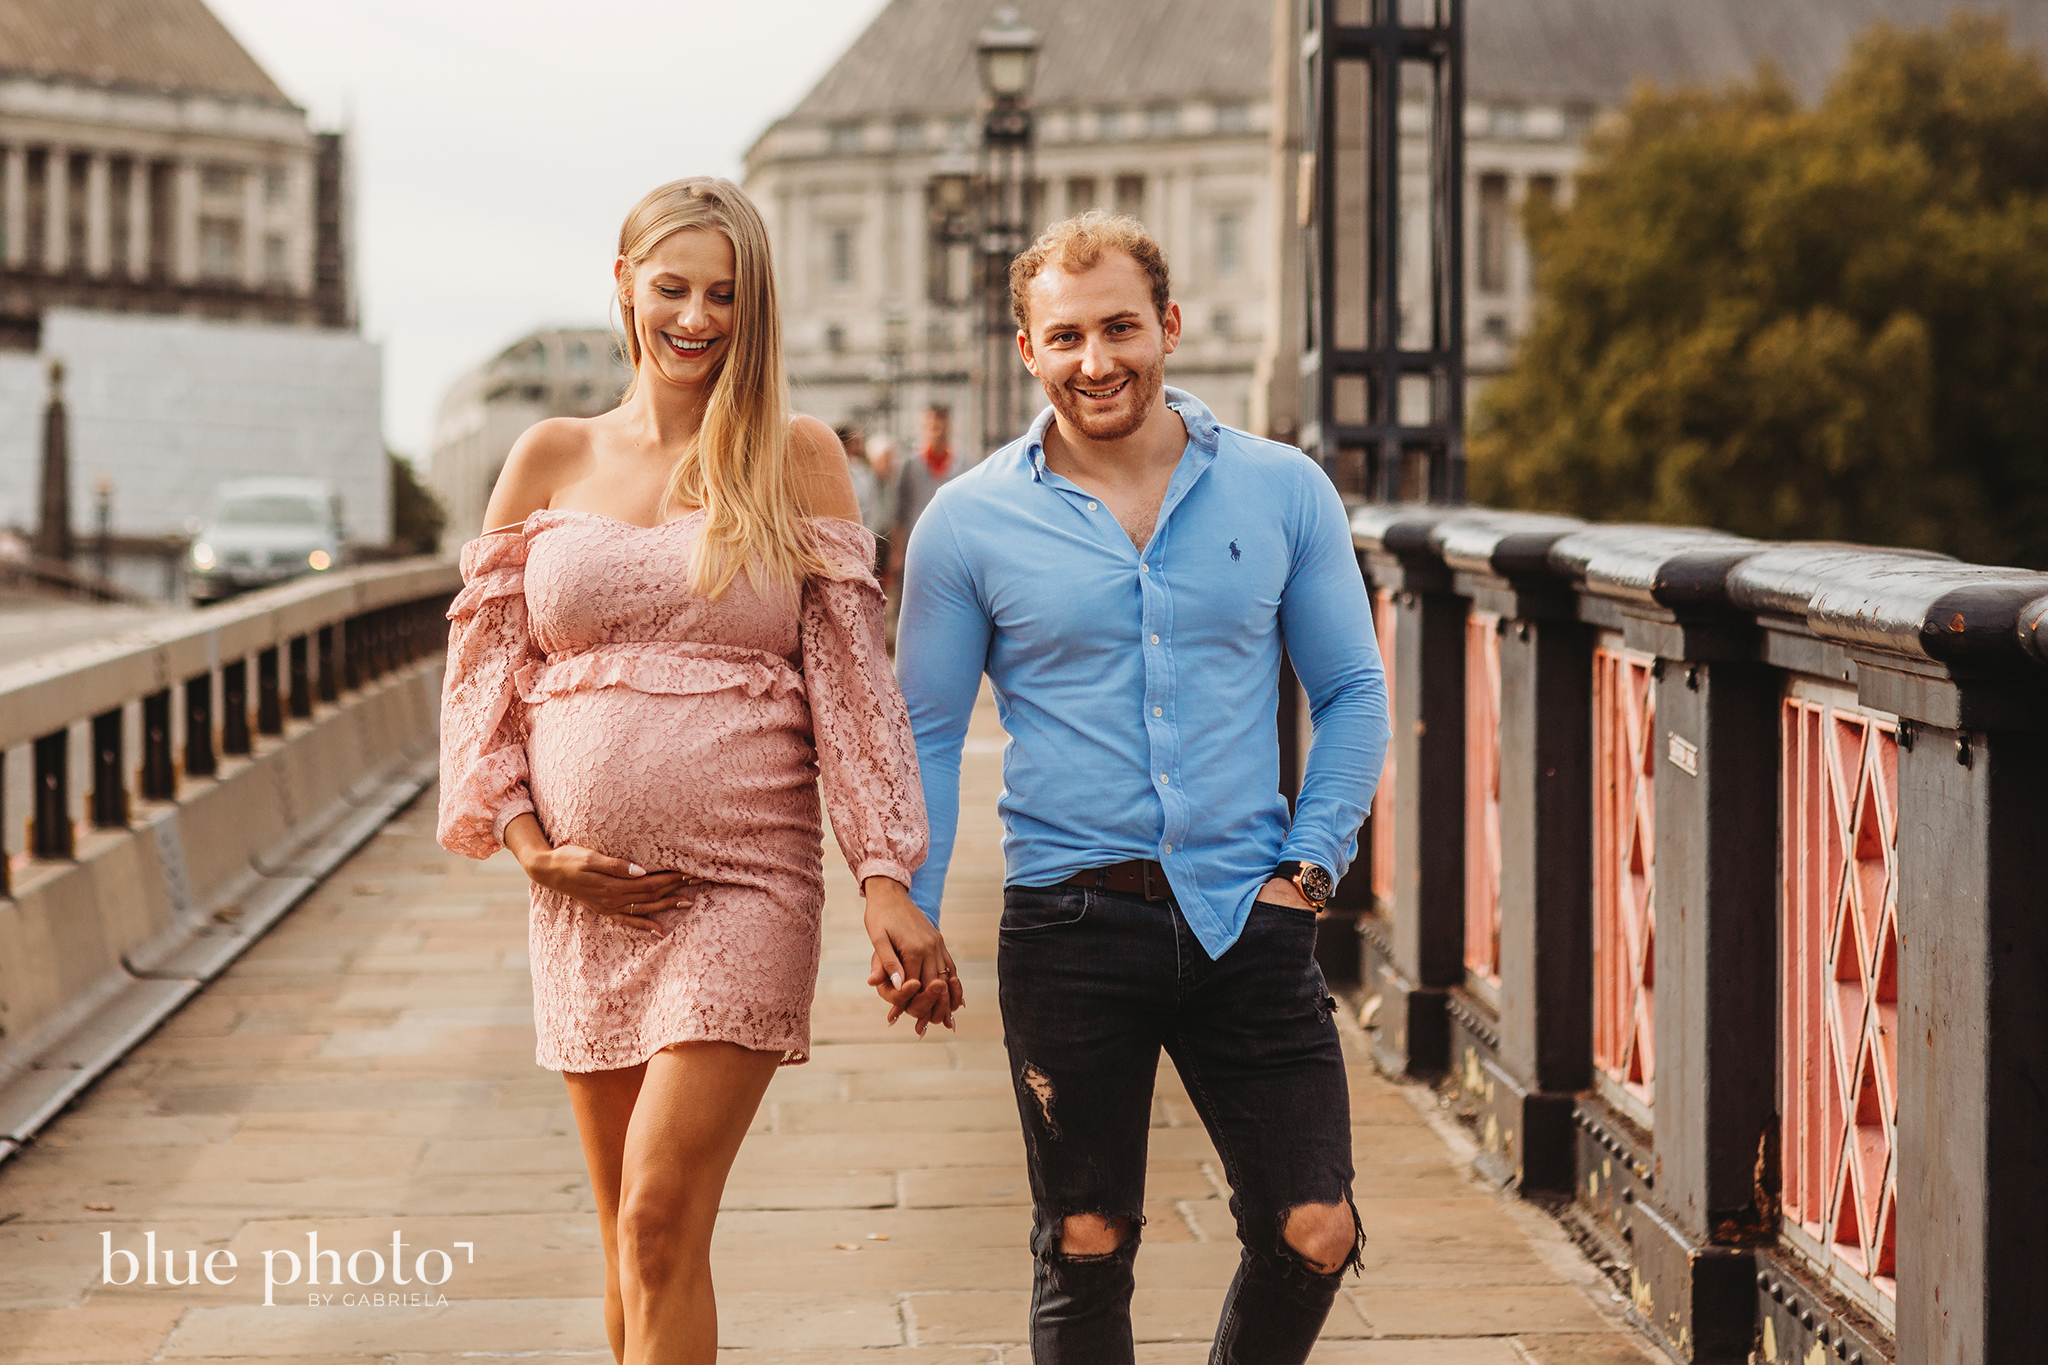 Angelika and Wojtek during their maternity session in South Bank, Central London. The couple is walking and smiling.